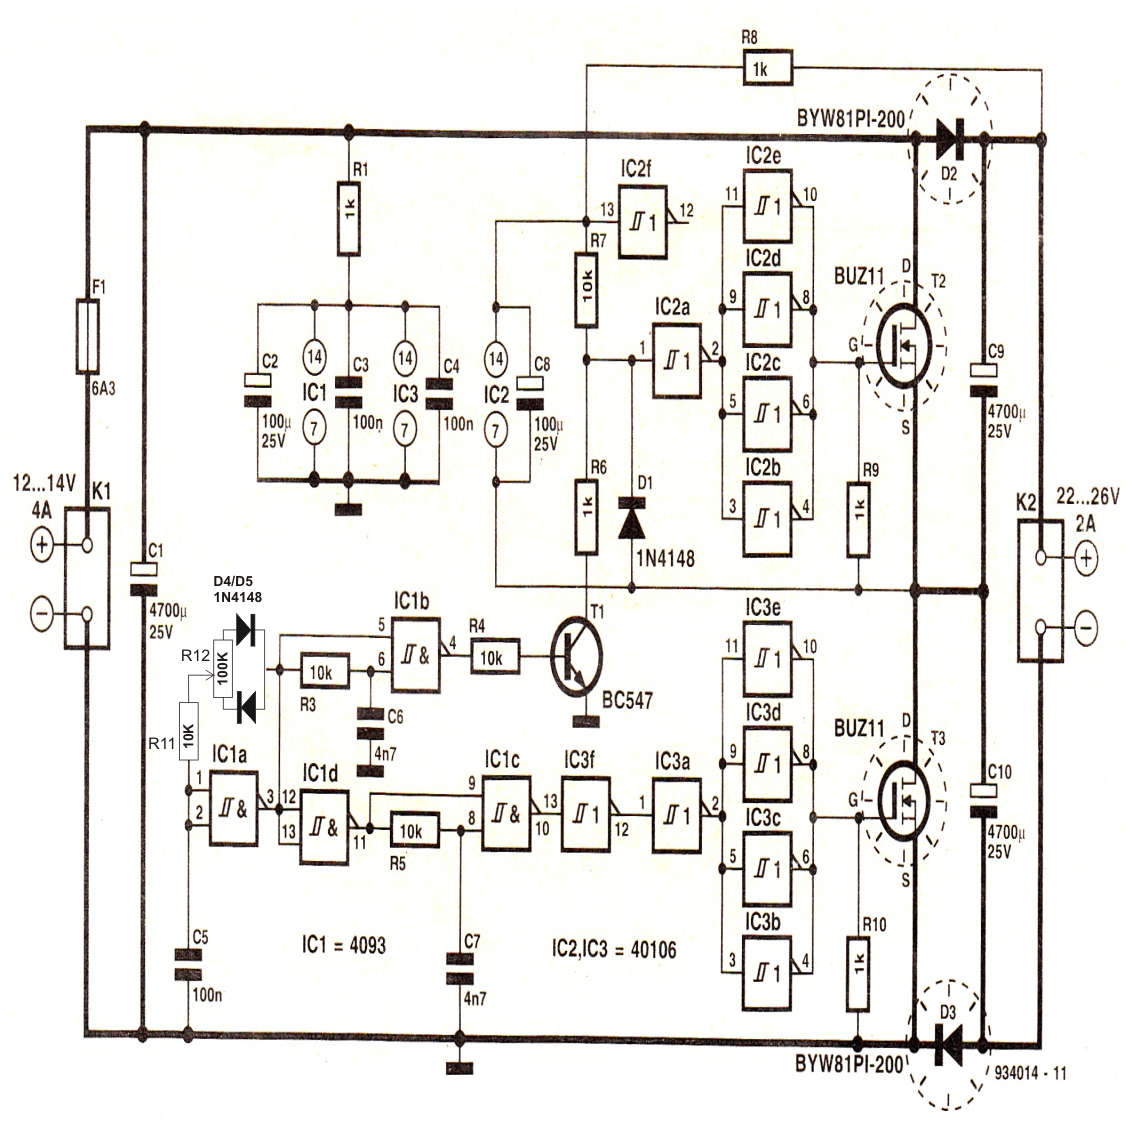 hight resolution of laptop power supply for car circuit schematic electronics schema laptop power supply for car circuit schematic